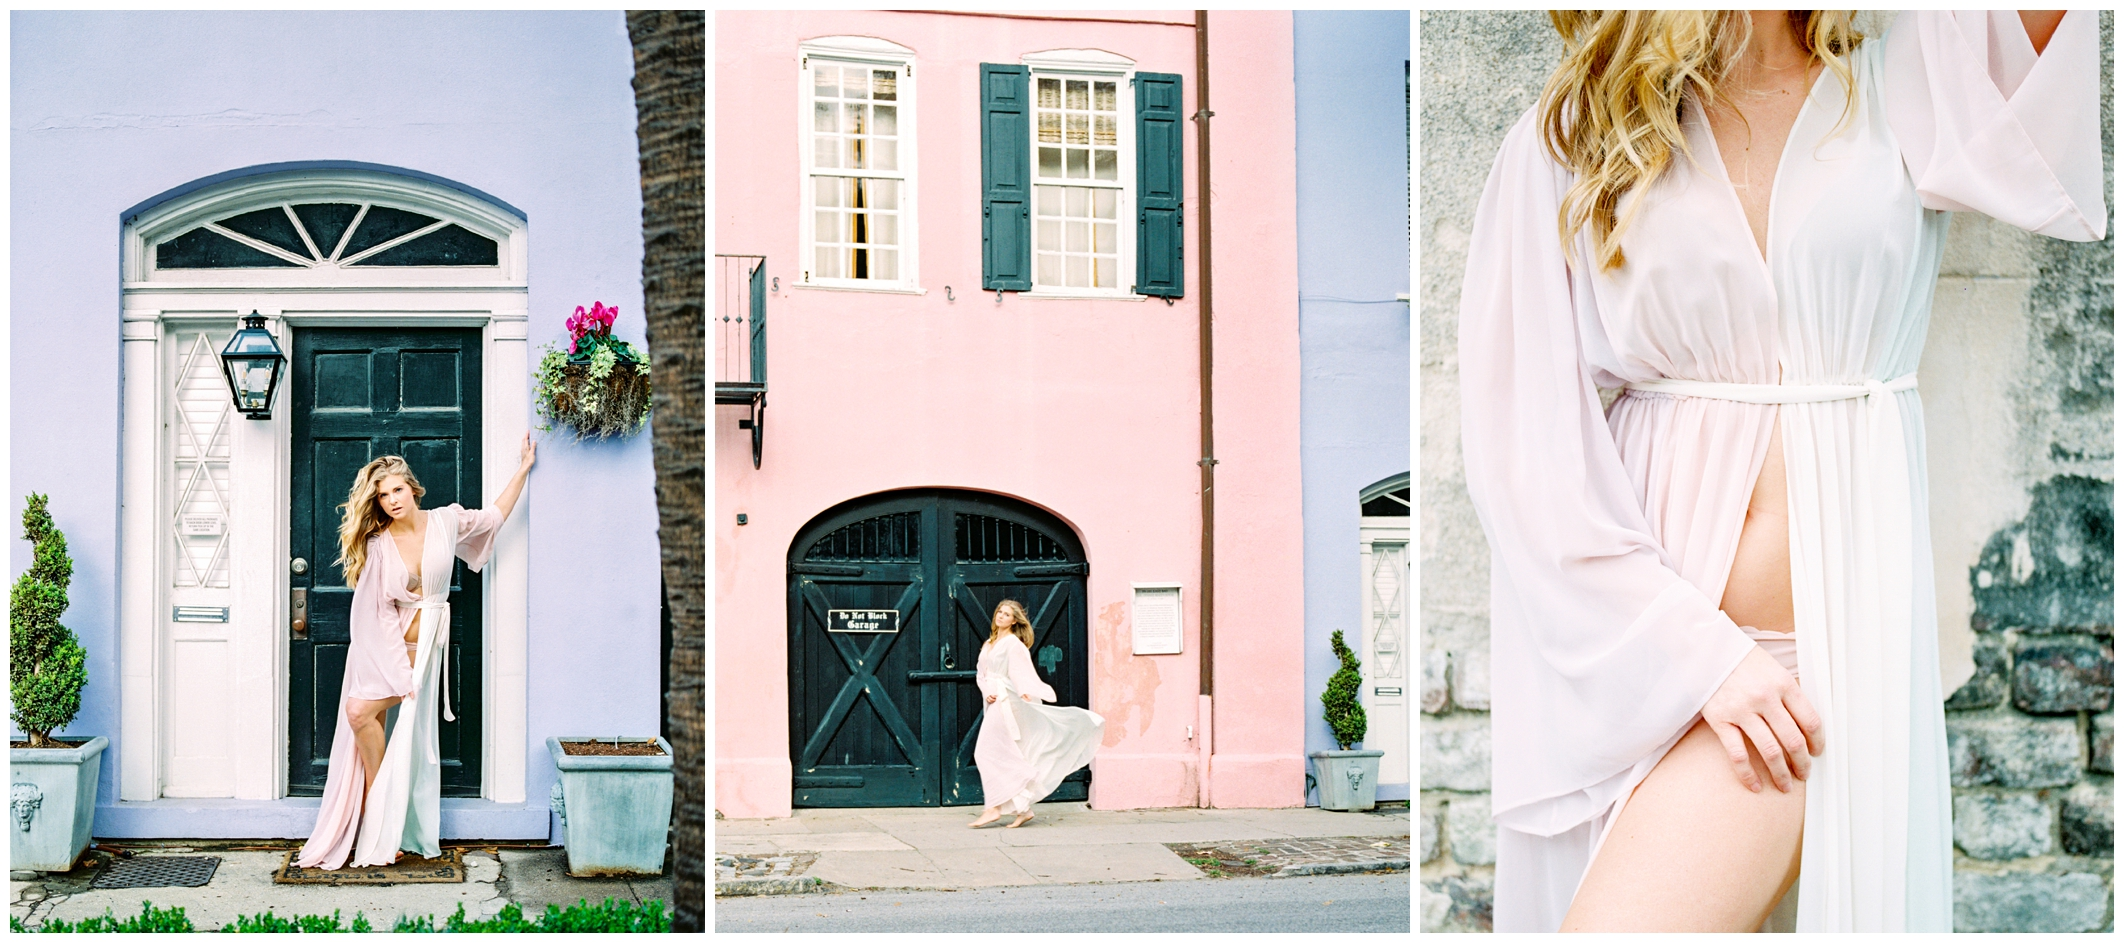 Domenica Domenica Editorial | Charleston, South Carolina